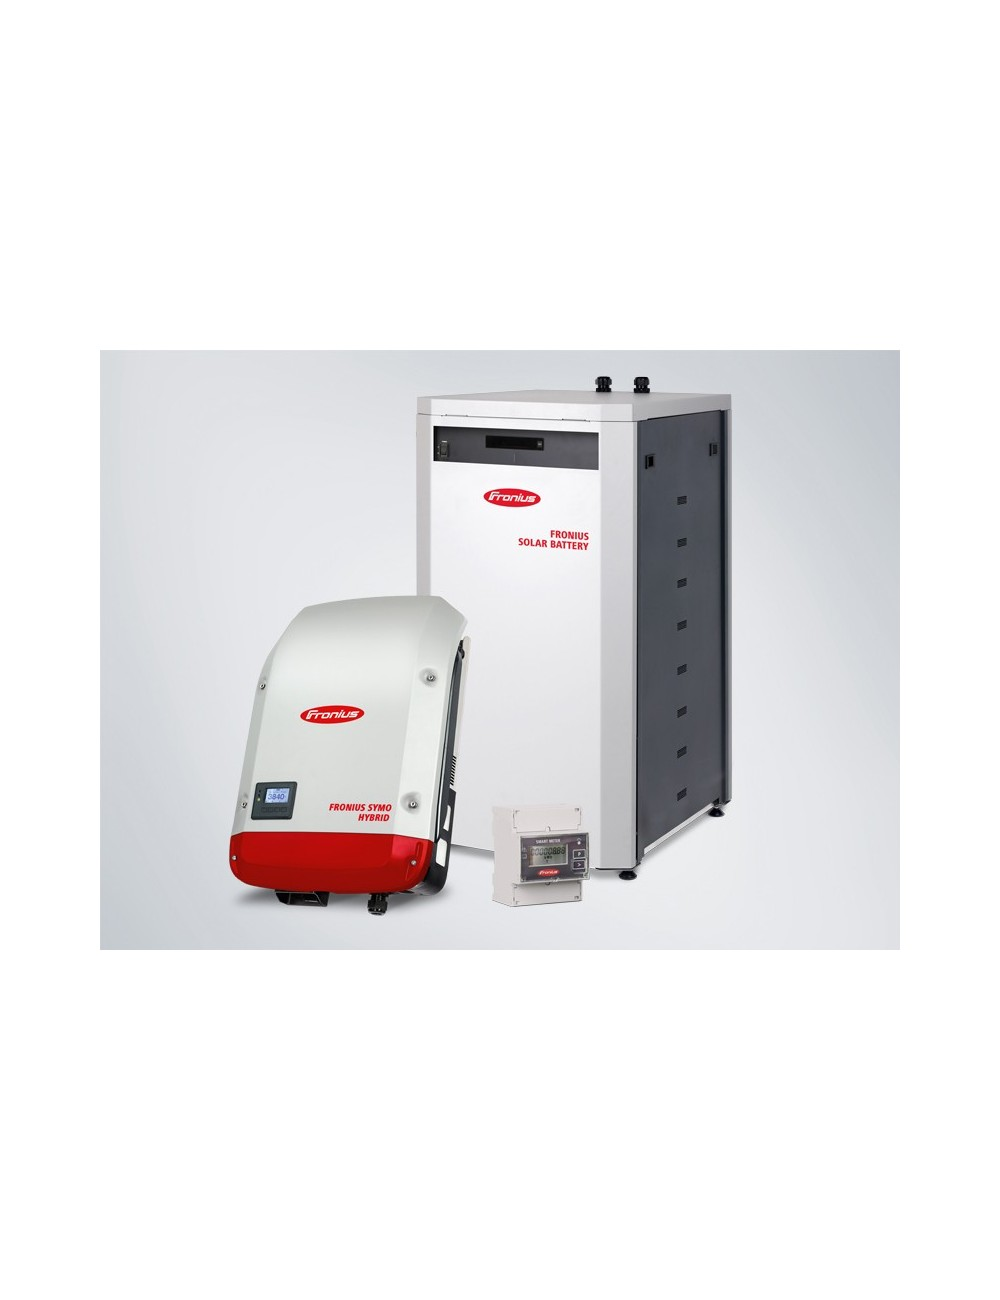 KIT ACCUMULO FOTOVOLTAICO 12 KWH FRONIUS ENERGY PACKAGE TRIFASE CON BATTERIA DA 12 KWH, INVERTER ED ENERGY METER